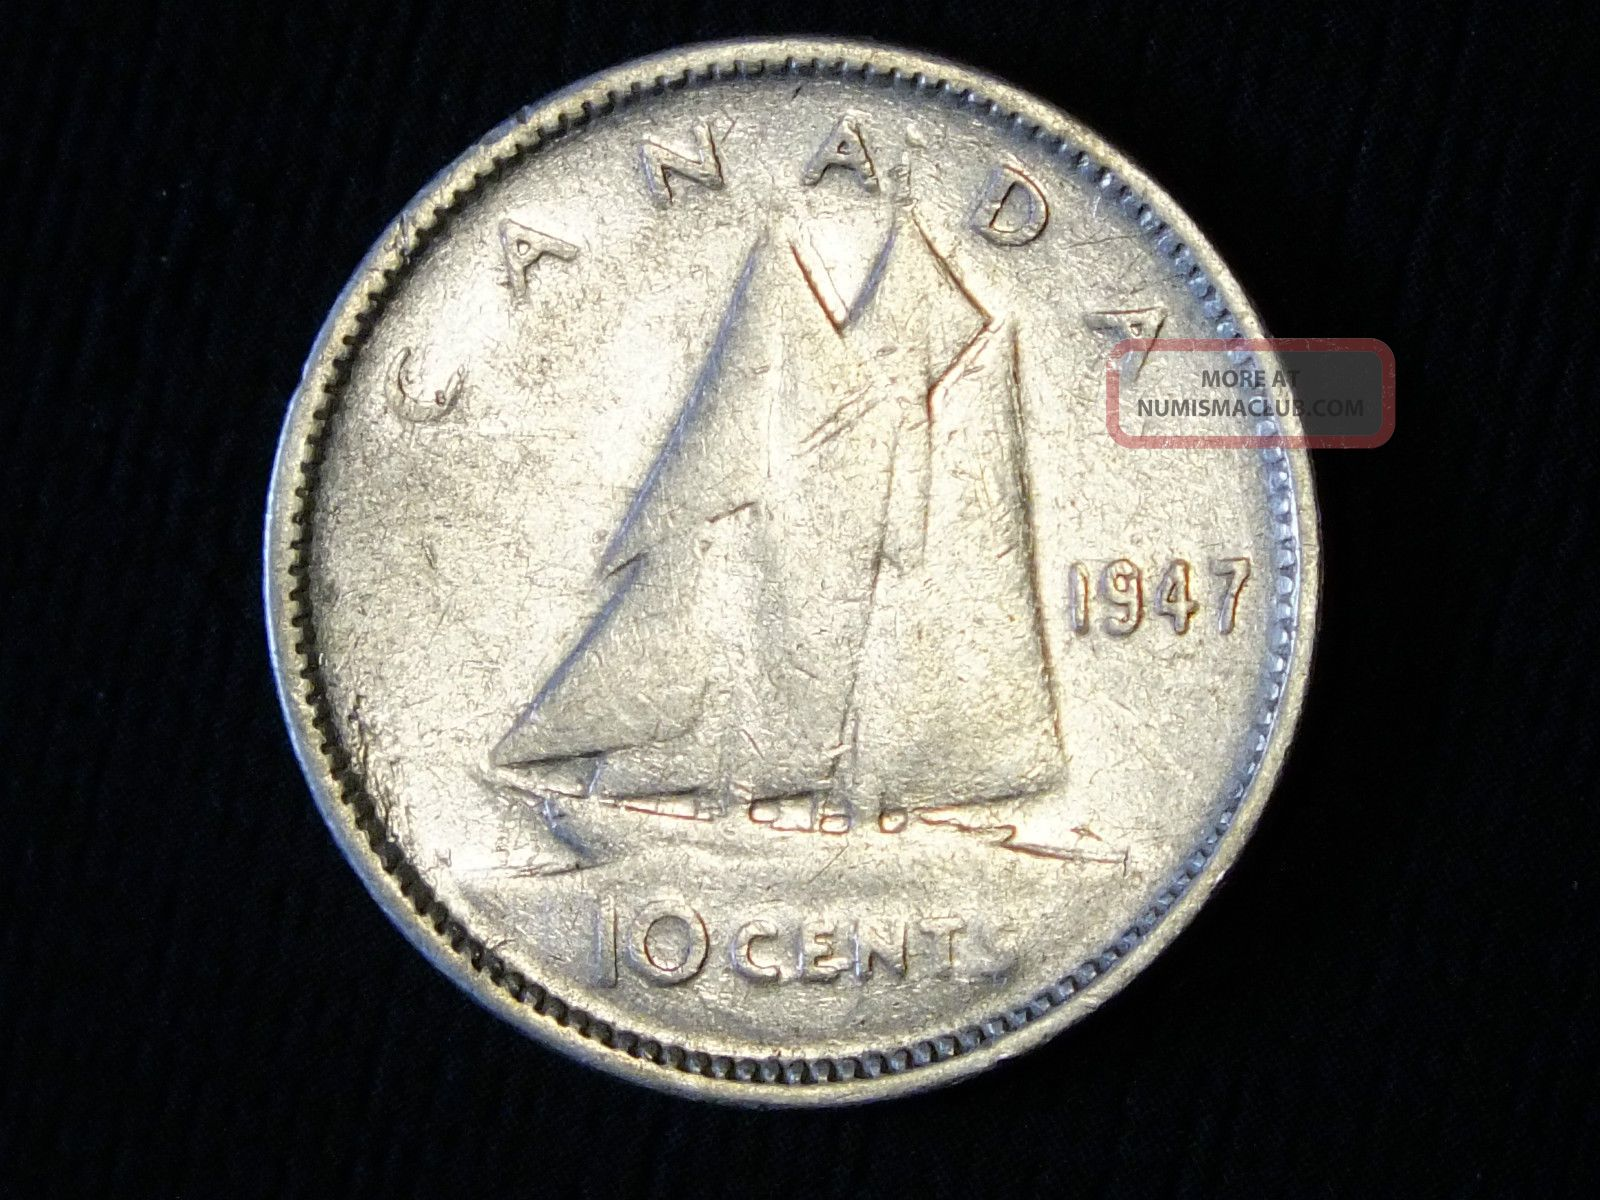 1947 Canadian Silver Ten Cent Coin Pictured You Will Receive